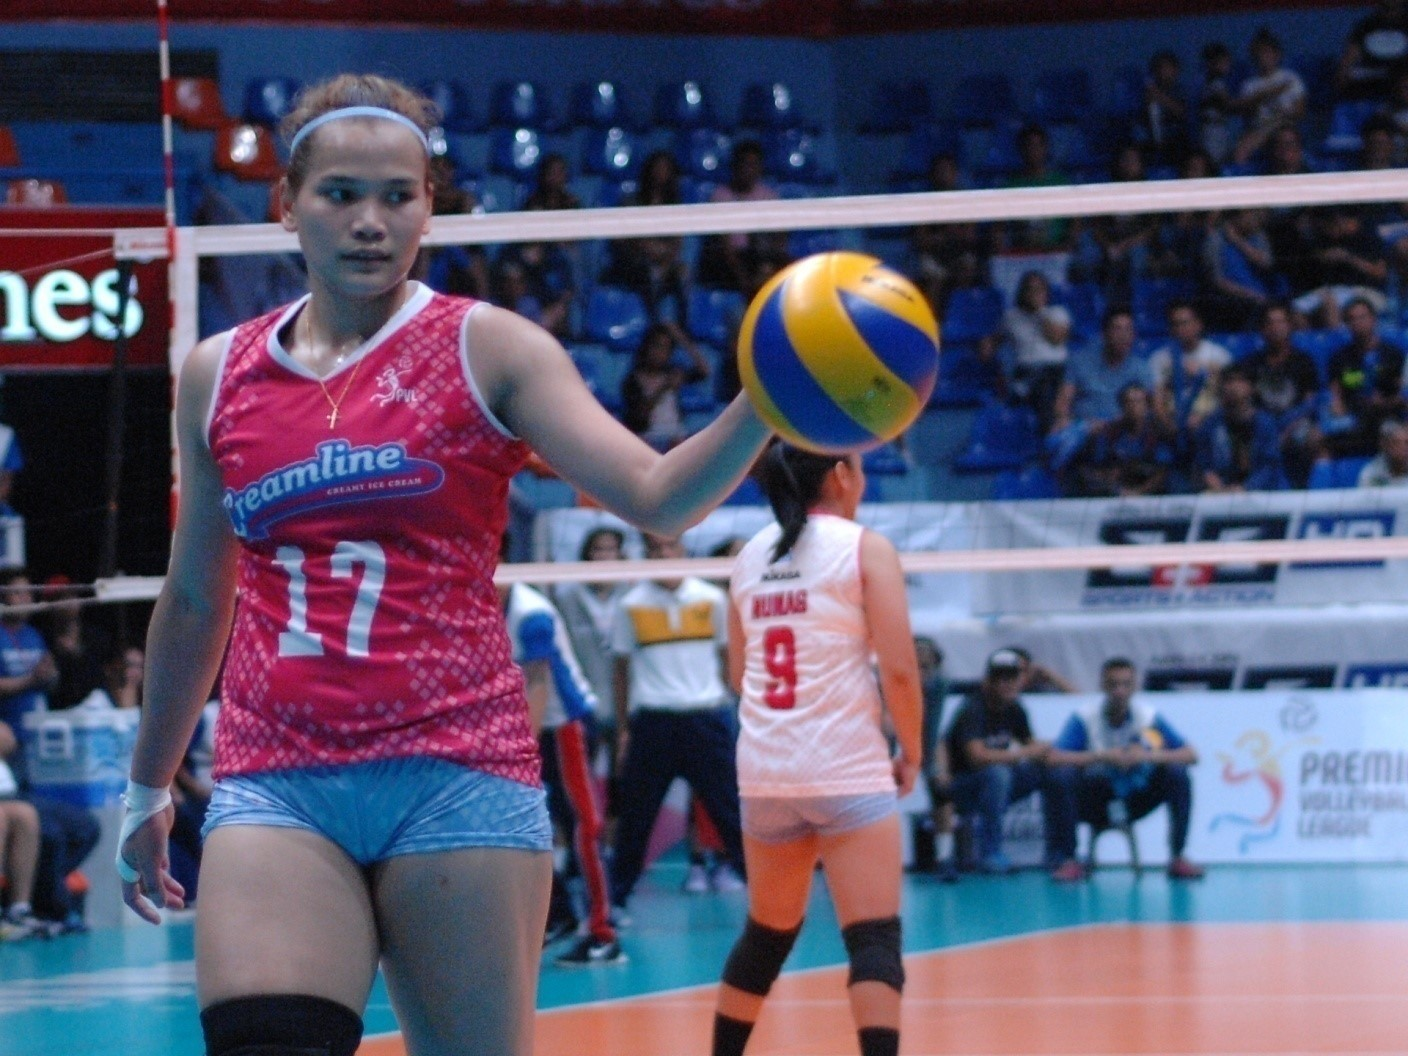 Vargas finds another home in Creamline